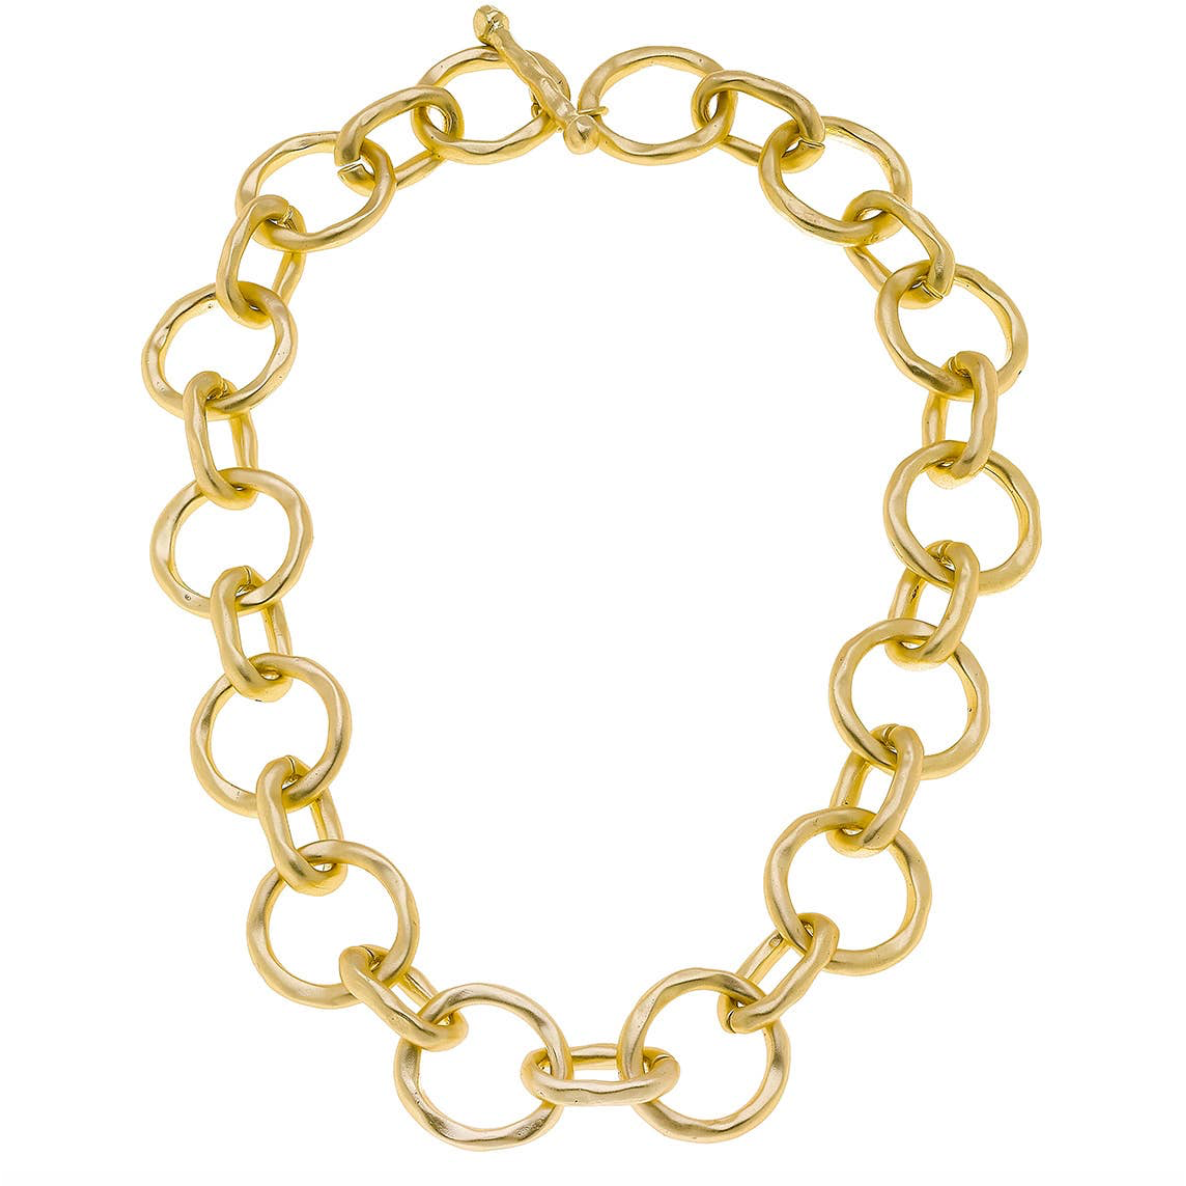 Circles & Ovals Link Necklace 21880